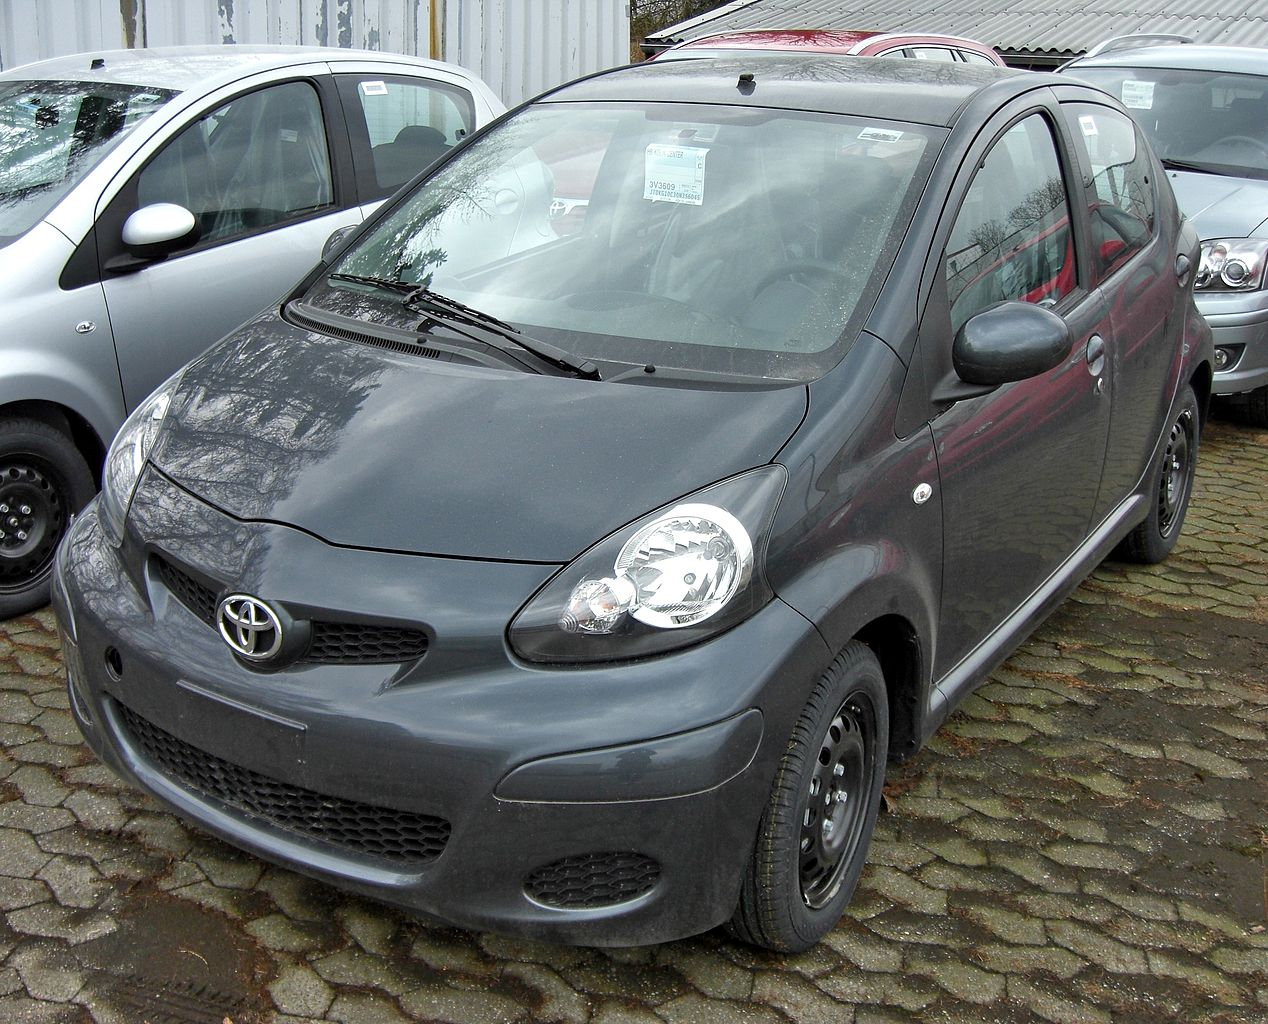 file toyota aygo facelift 20090314 wikimedia commons. Black Bedroom Furniture Sets. Home Design Ideas